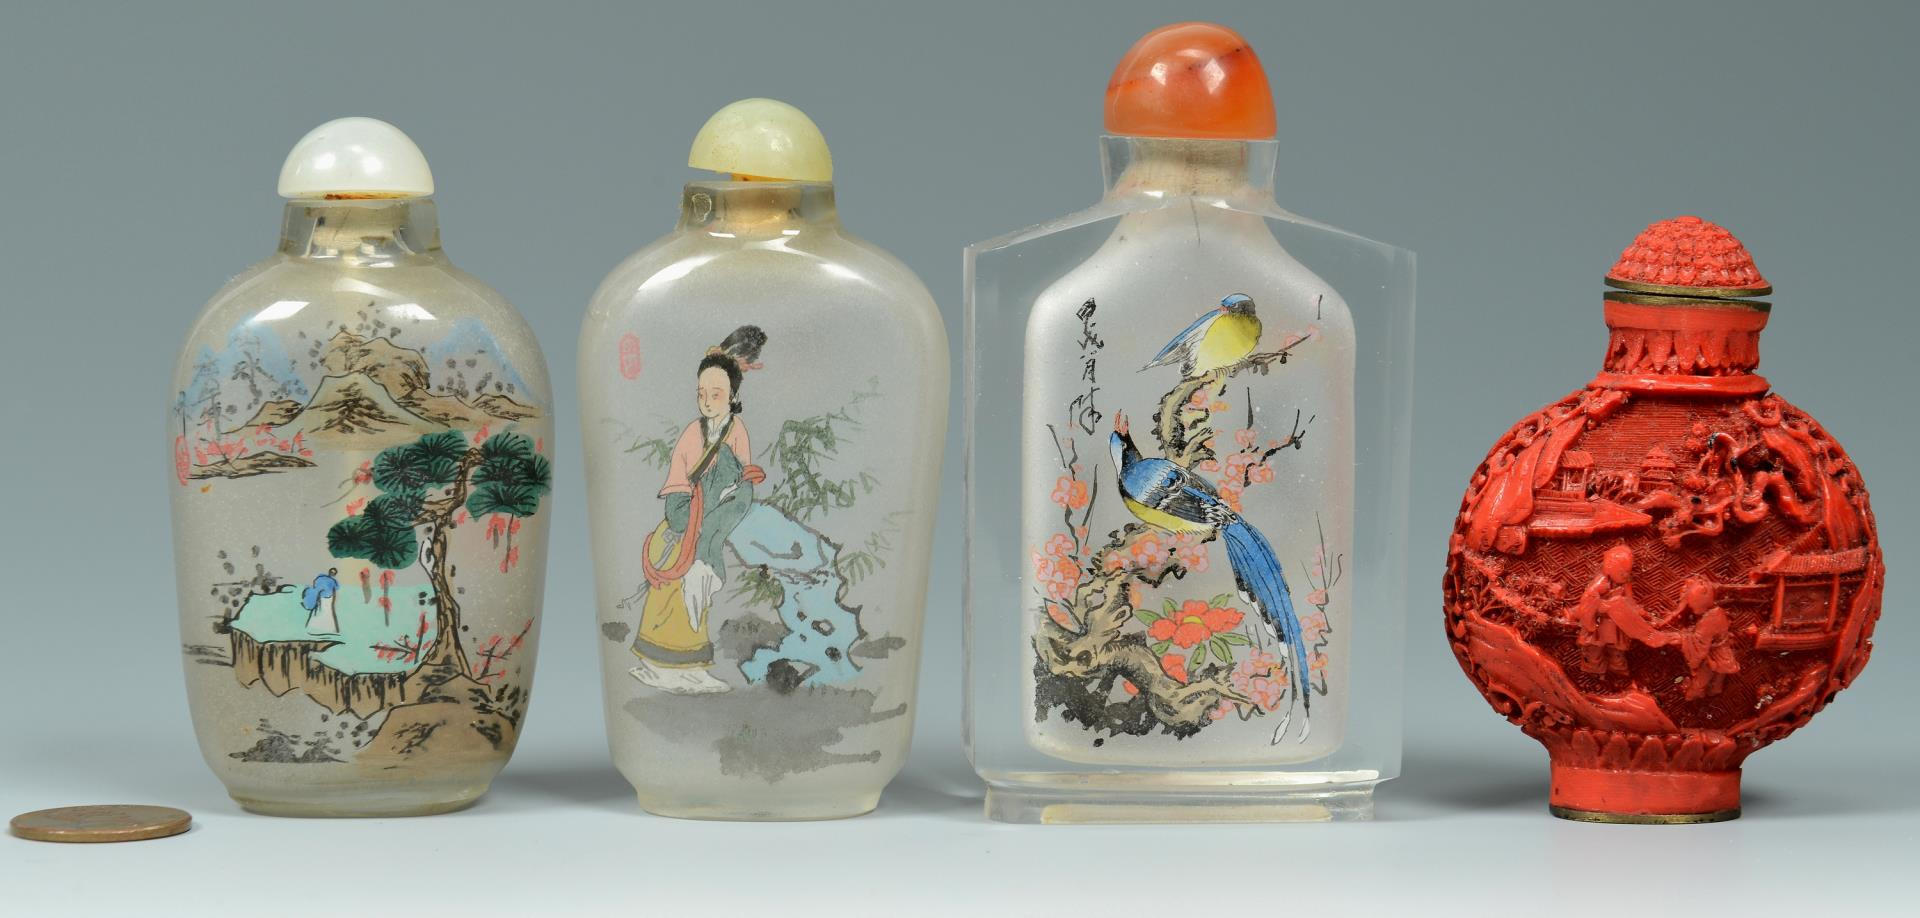 Lot 574: 4 Chinese Snuff Bottles